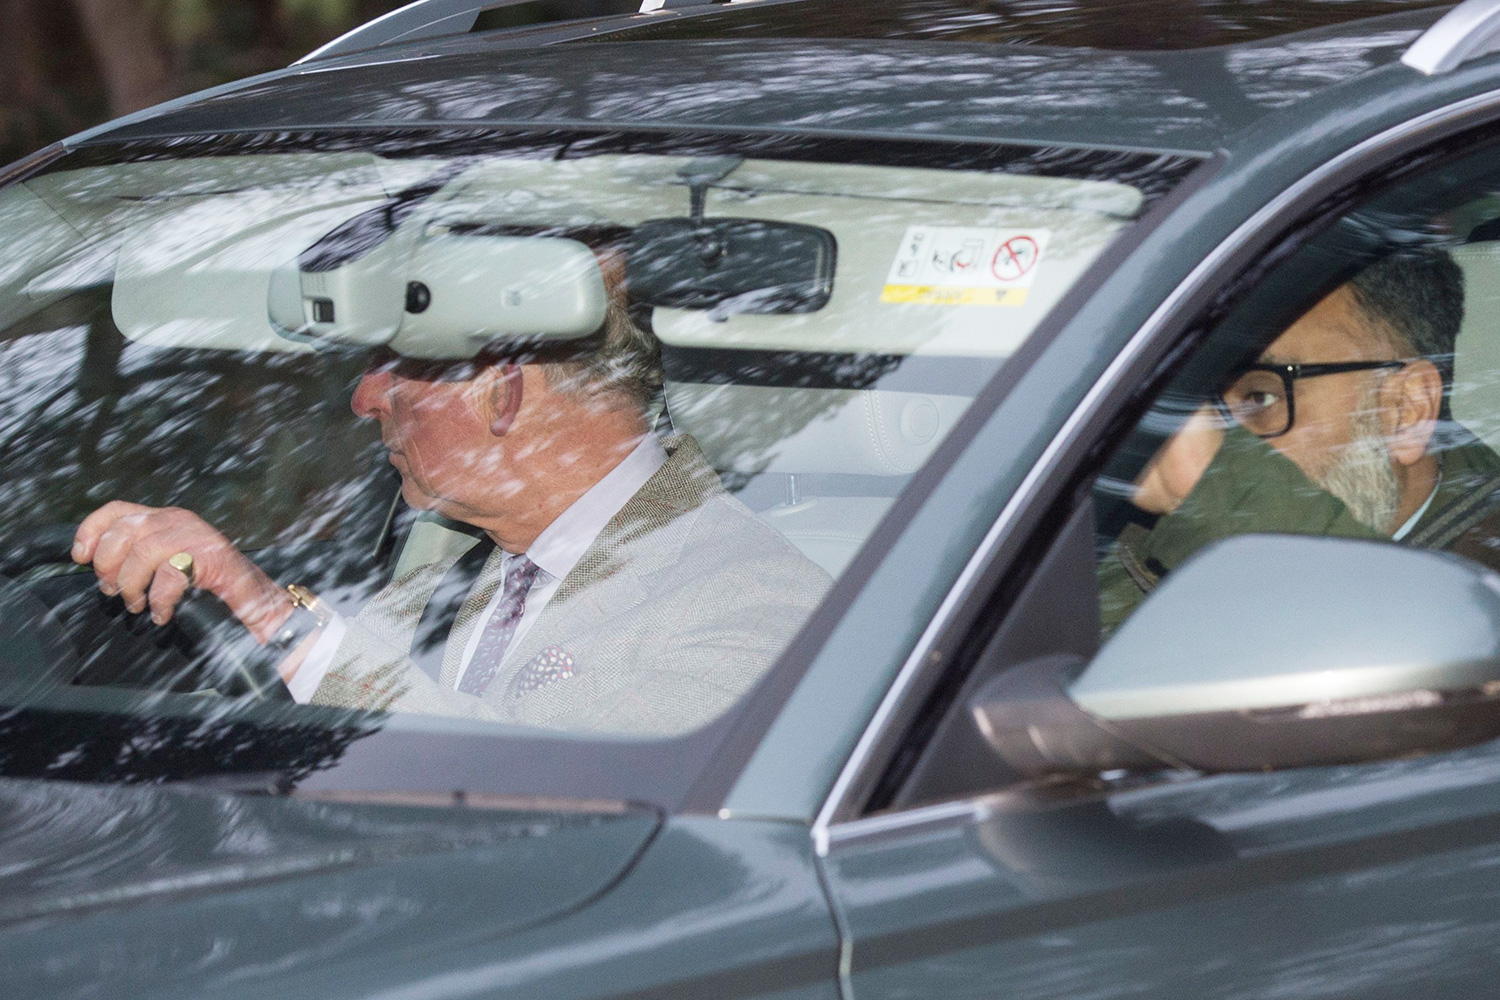 Prince Charles leaves Sandringham house after a meeting to determine the future of the Sussexes as part of the Royal family.